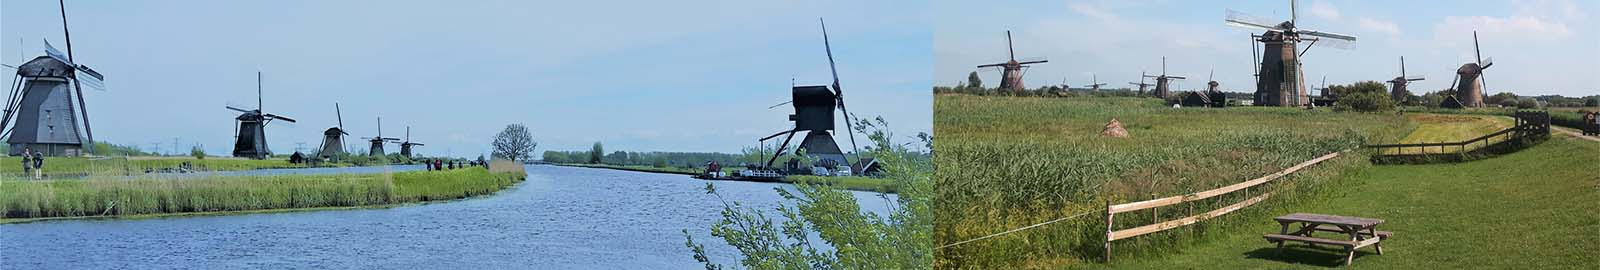 Kinderdijk Walking Tour